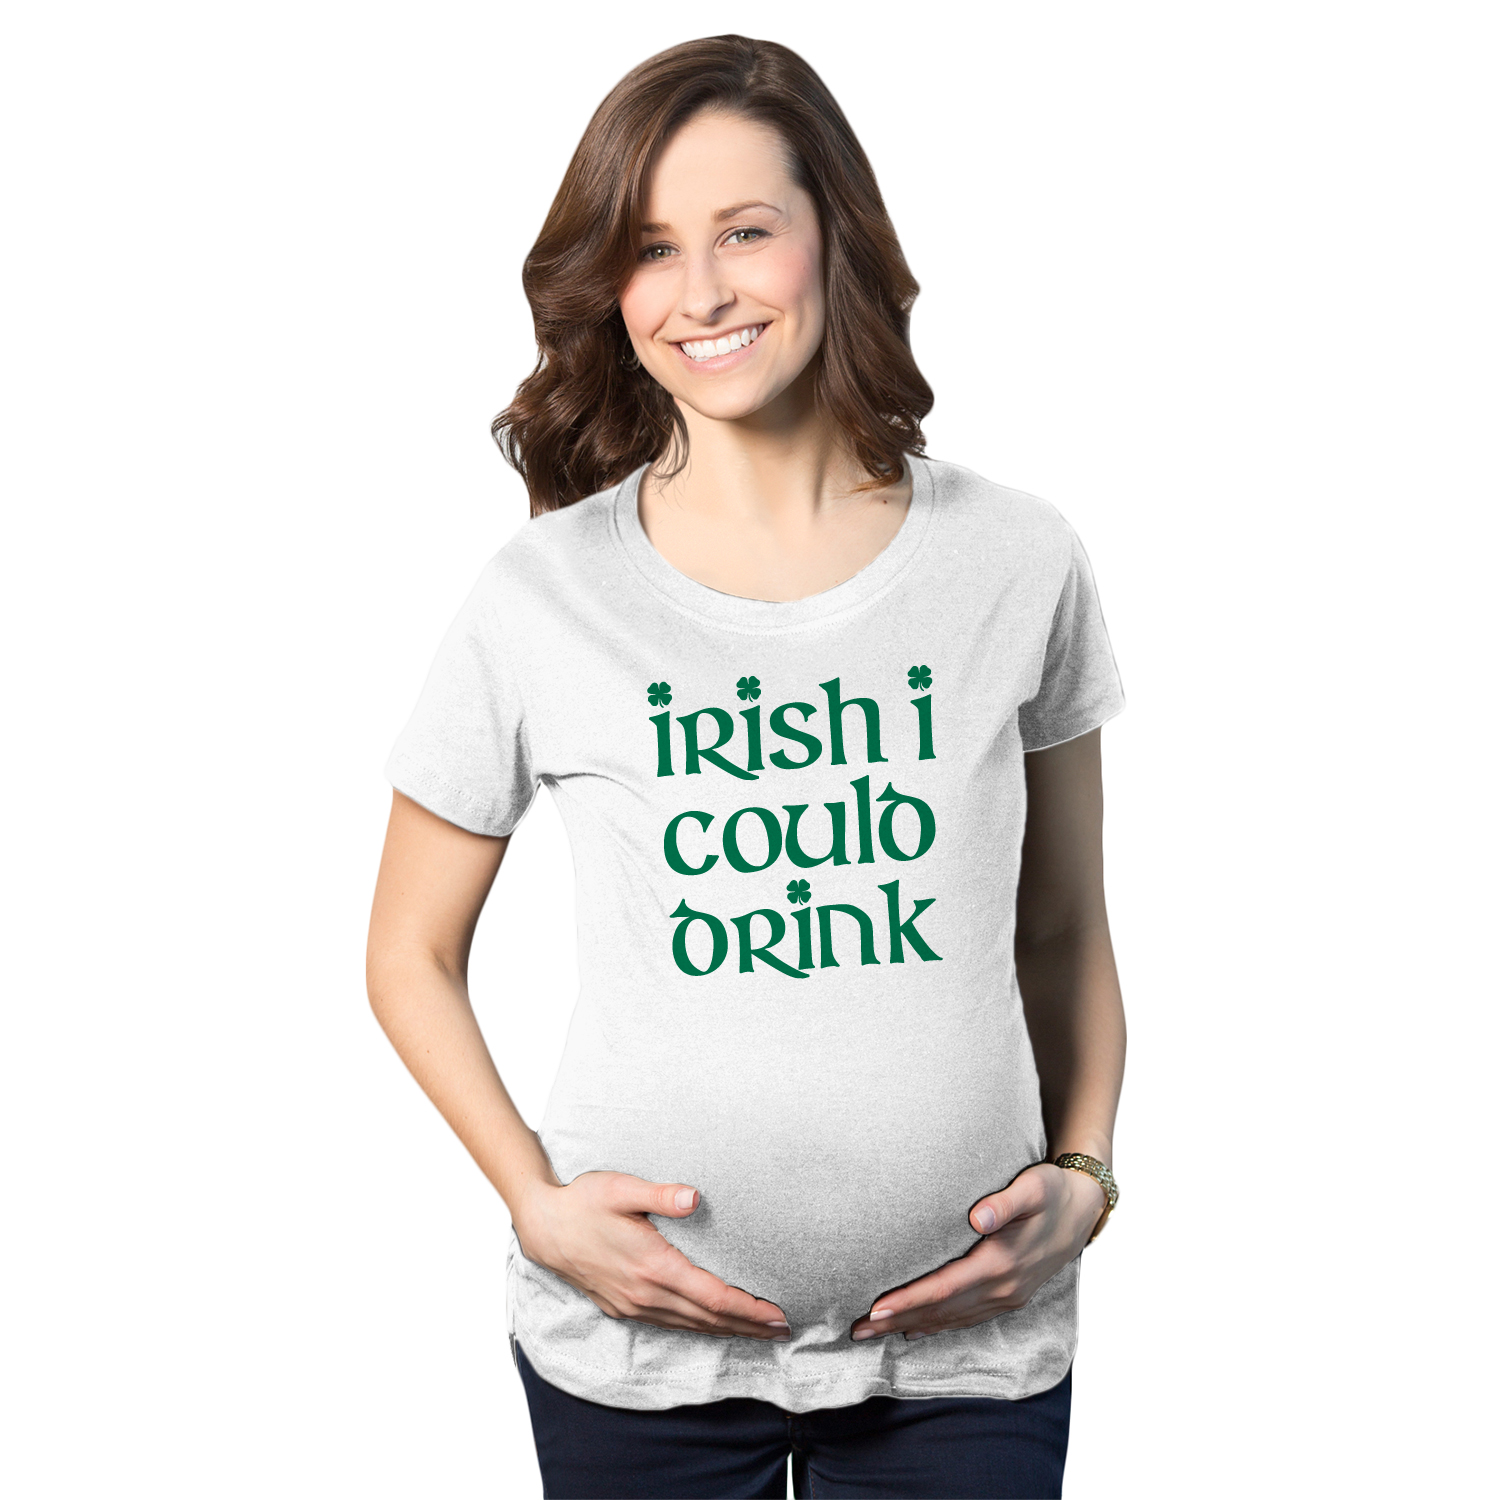 a2eae5aac38 Maternity Irish I Could Drink Funny St. Patrick s Pregnancy Announcement T  shirt (White) S